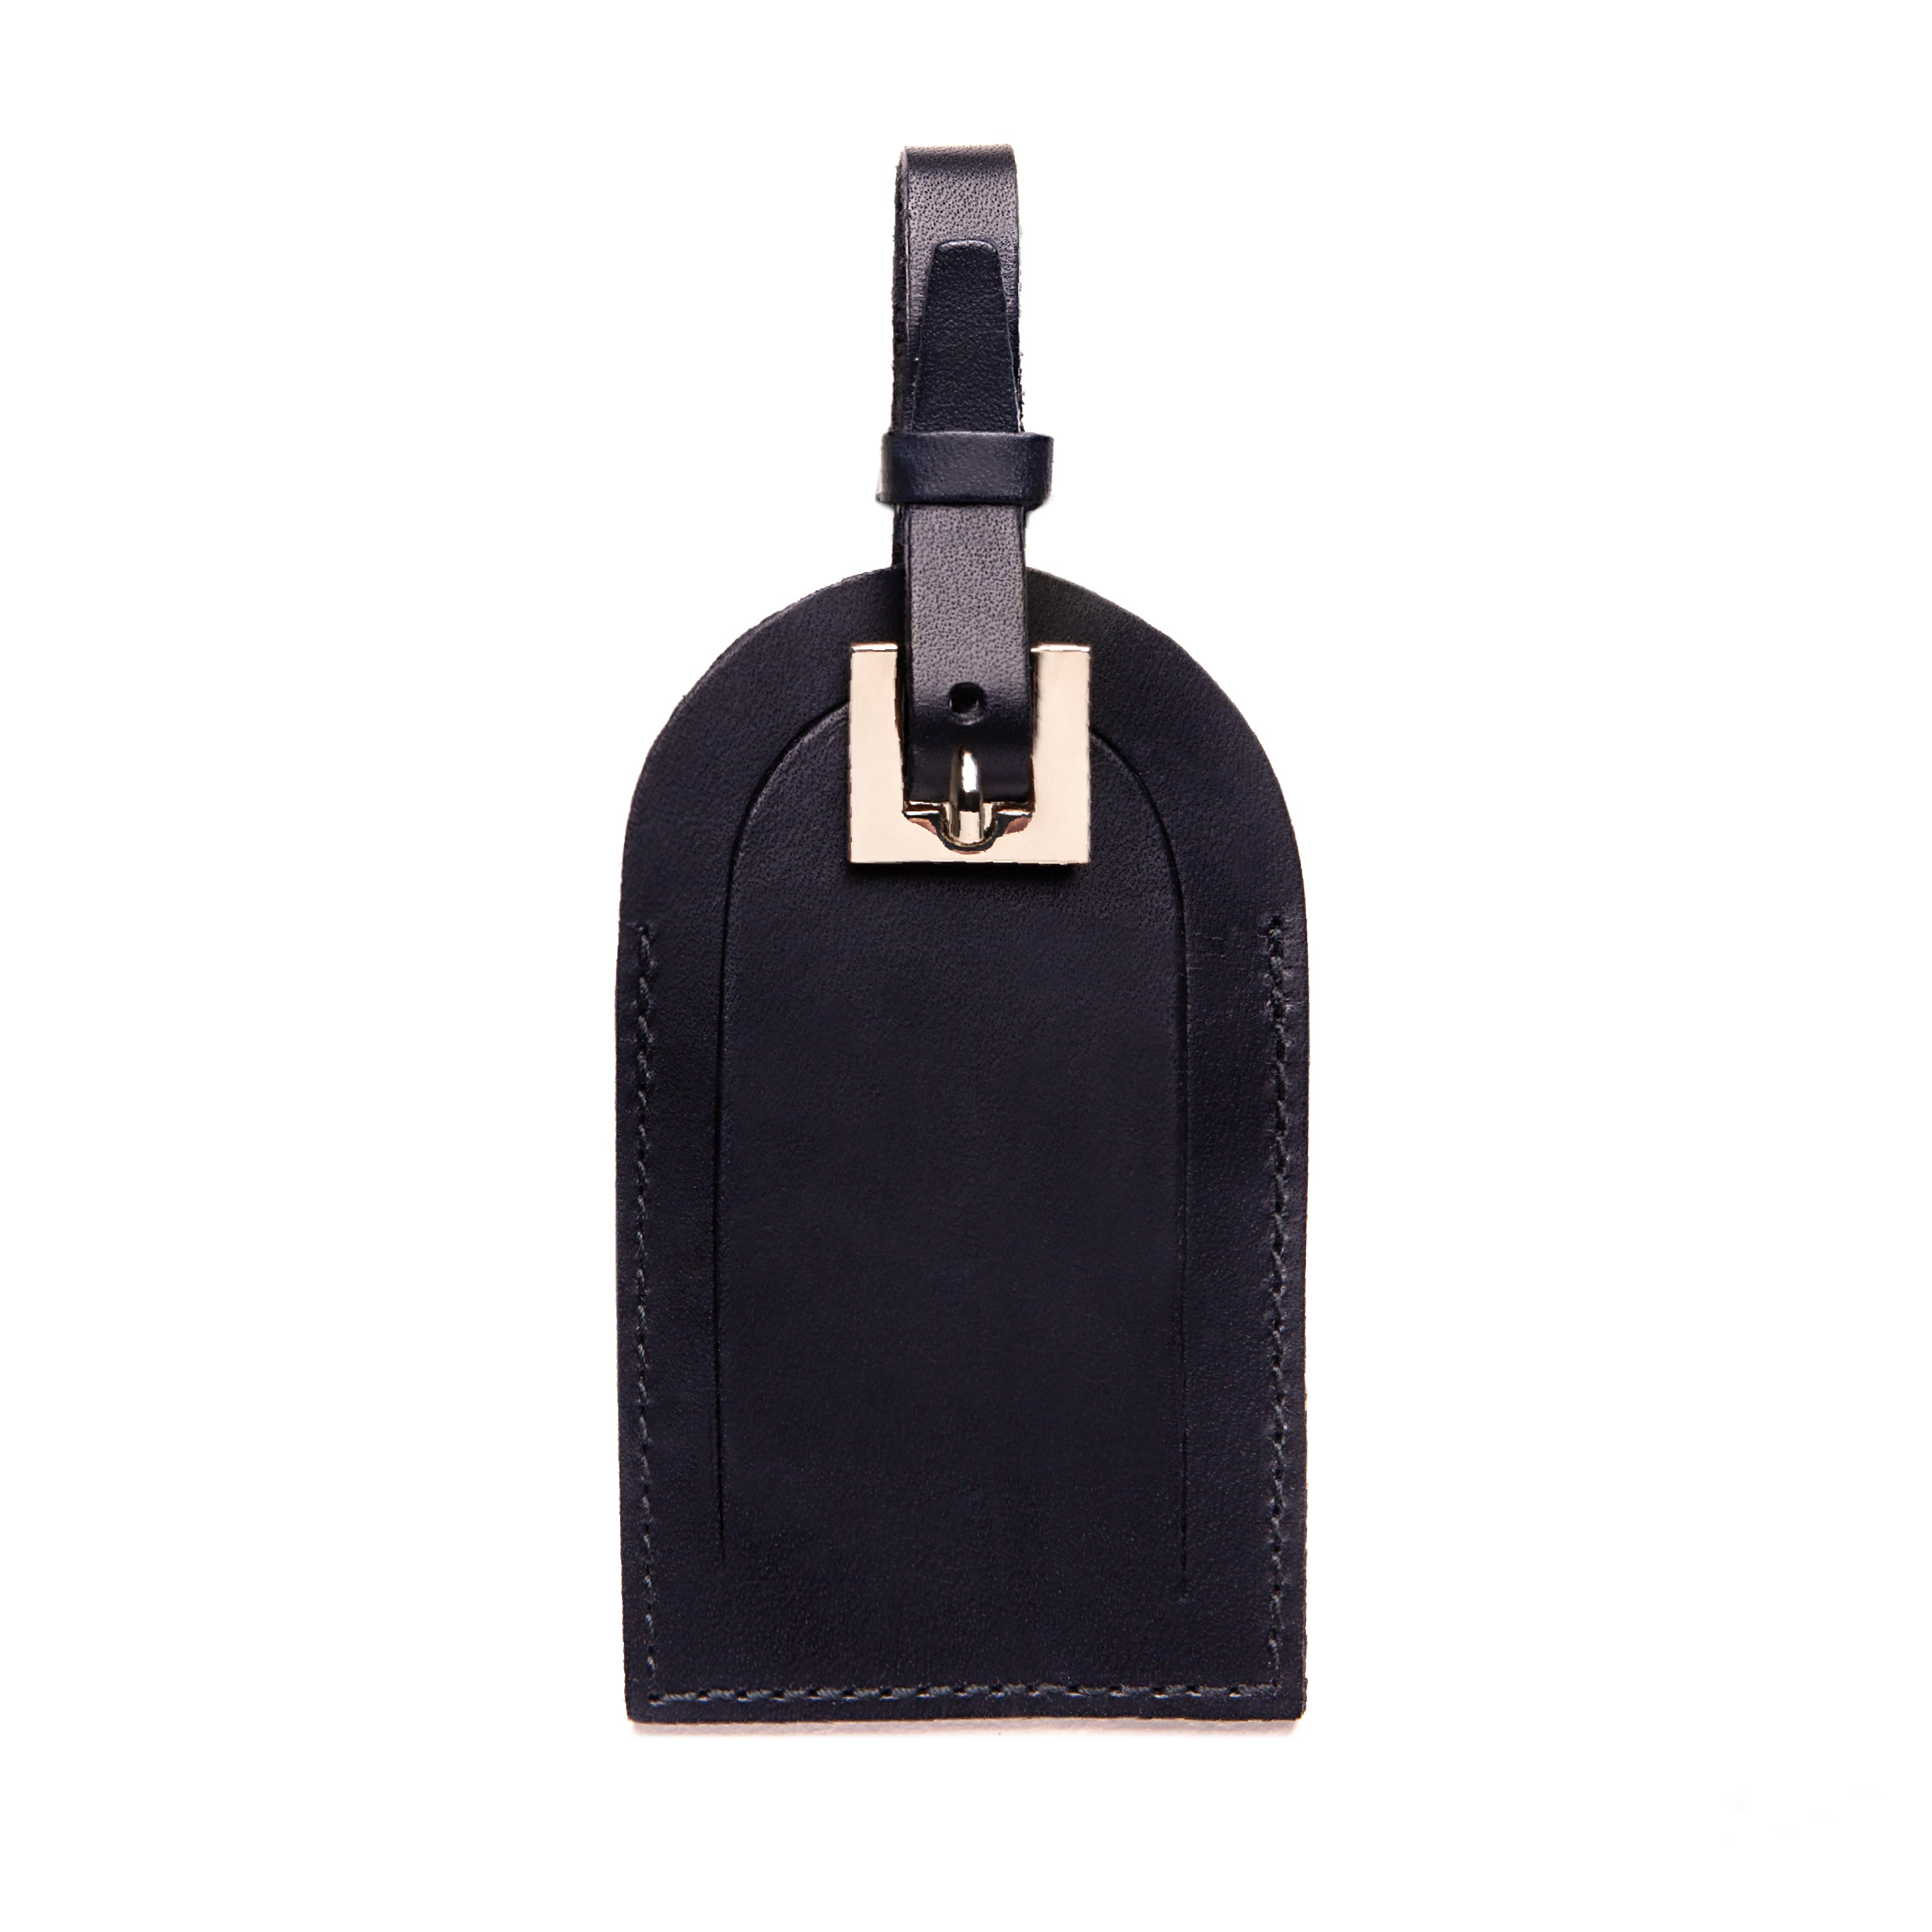 Ettinger Lifestyle Security Flap Luggage Tag